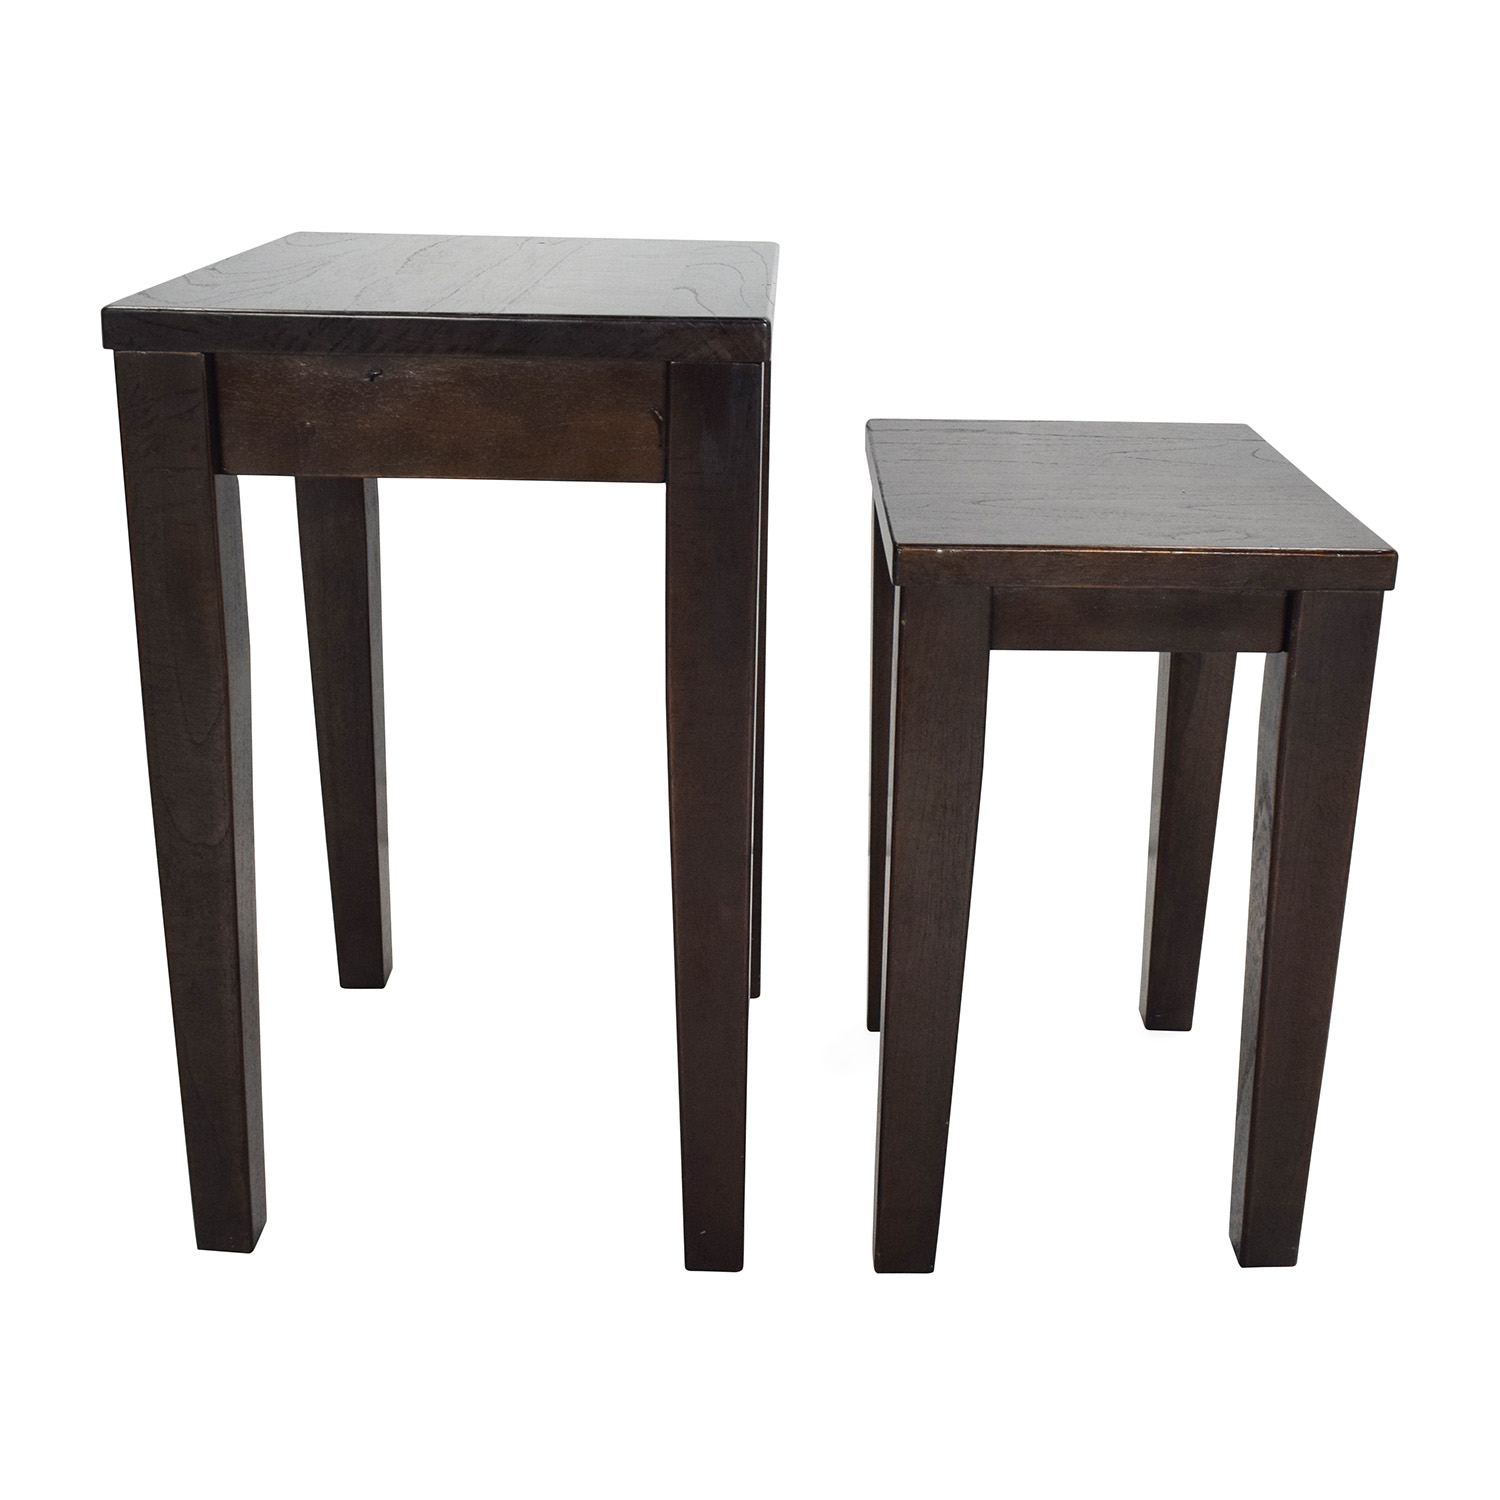 buy Crate and Barrel Crate & Barrel Nesting Tables online